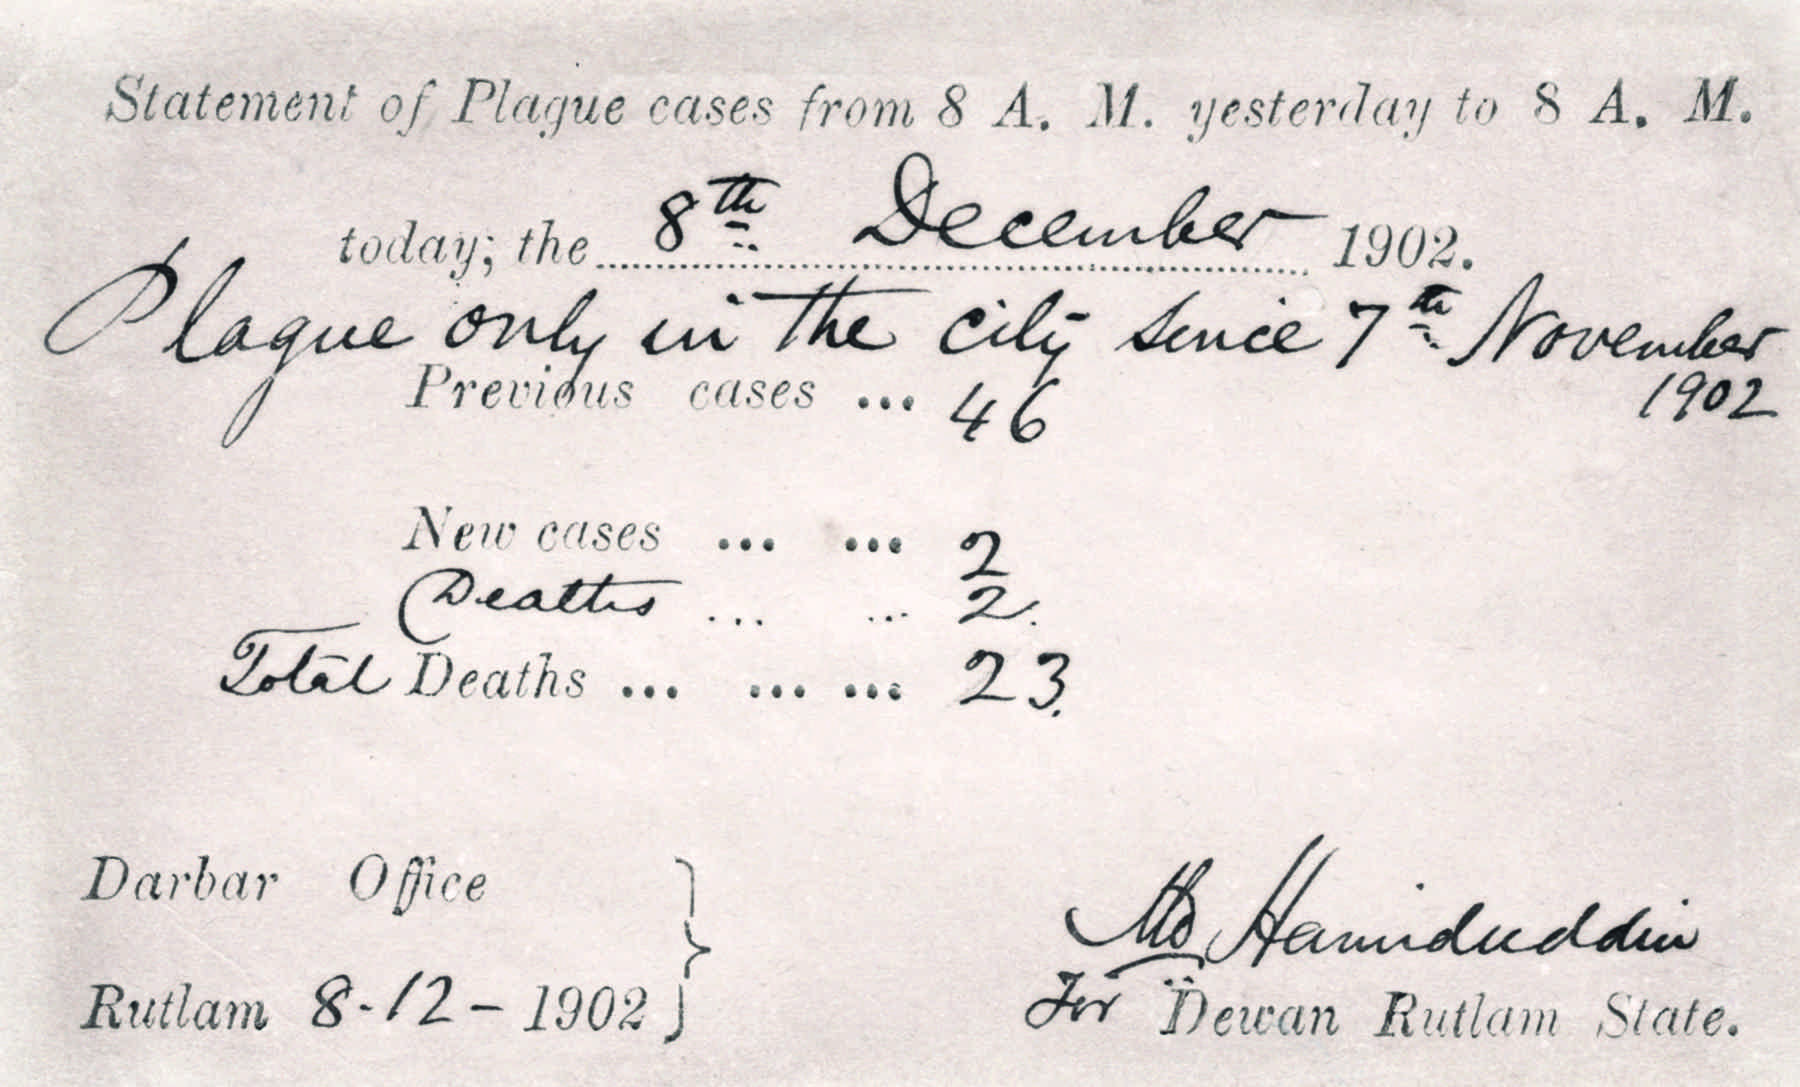 'Statement of plague cases from yesterday to 8 AM today, The 8th December 1902', by Halftone Postcard, Undivided back, 14 x 8.85 cm, 5.51 x 3.48 in.